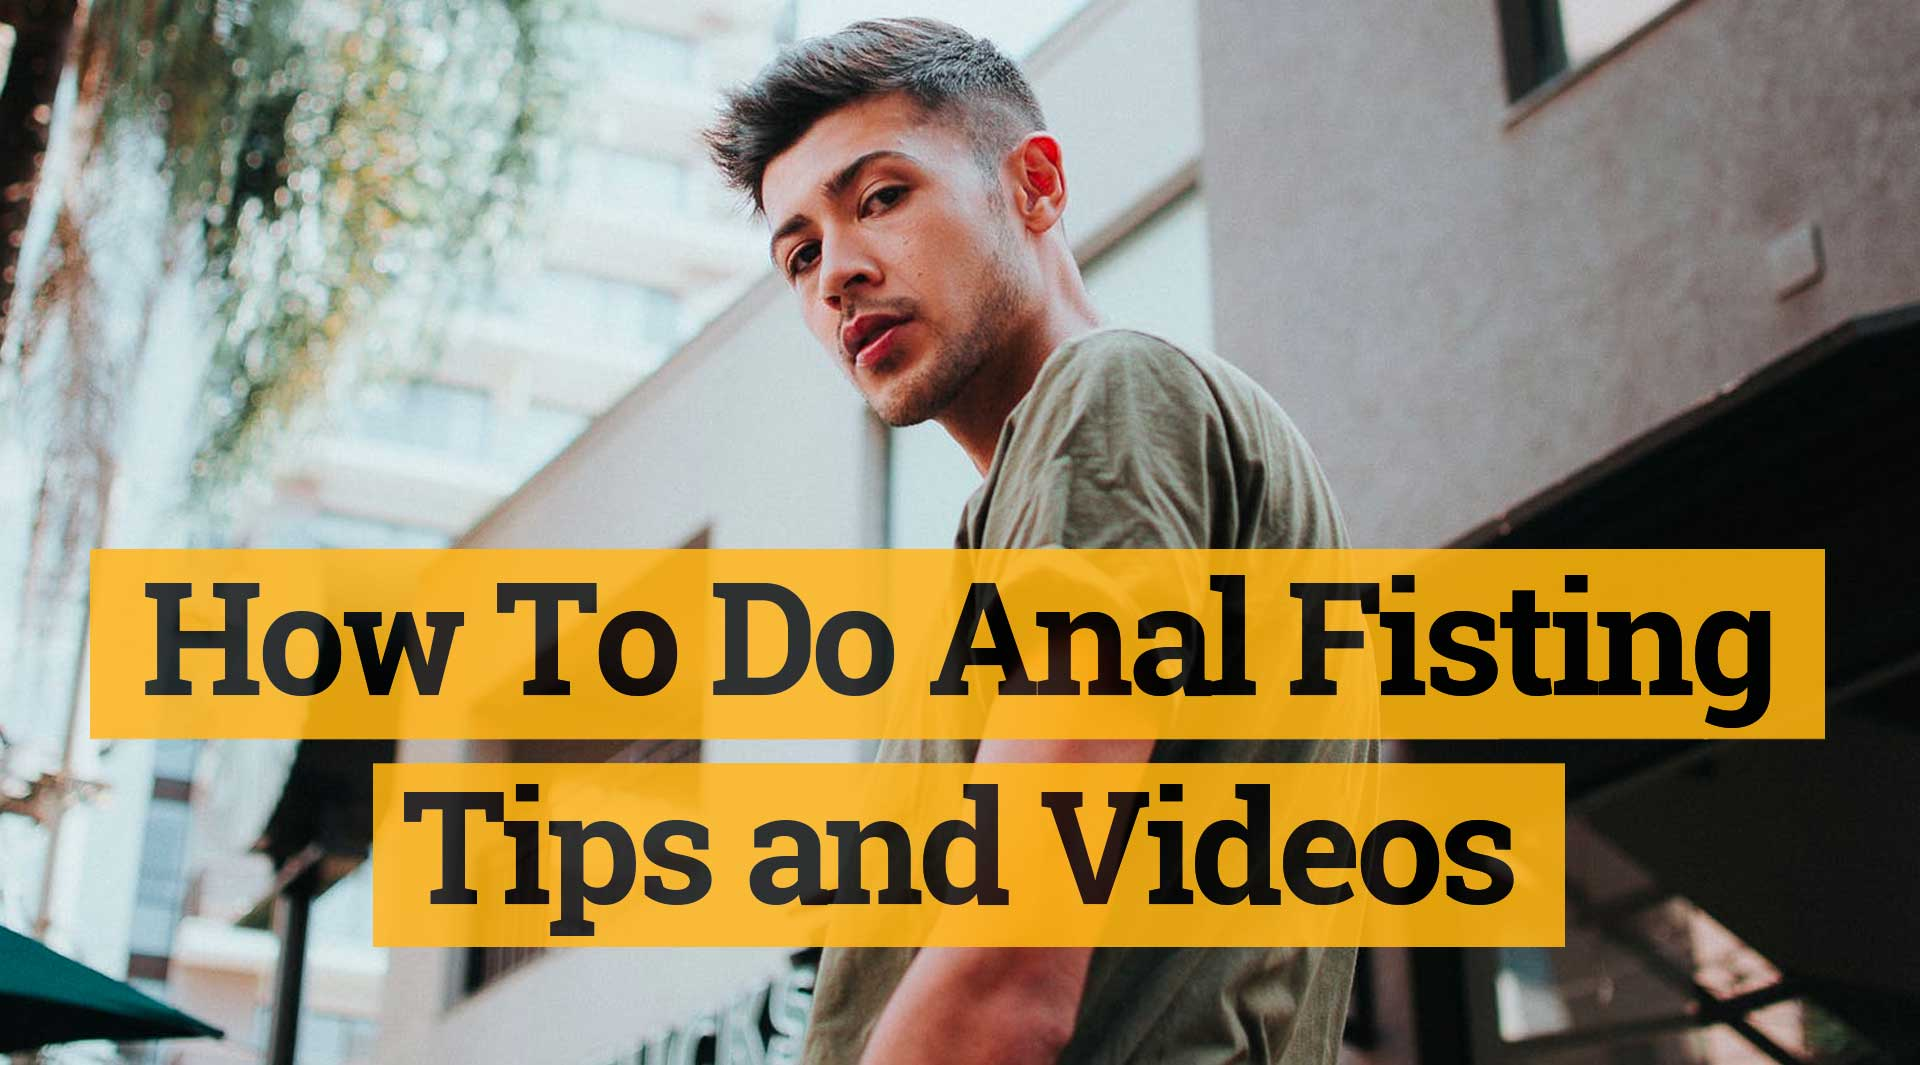 How to do anal fisting